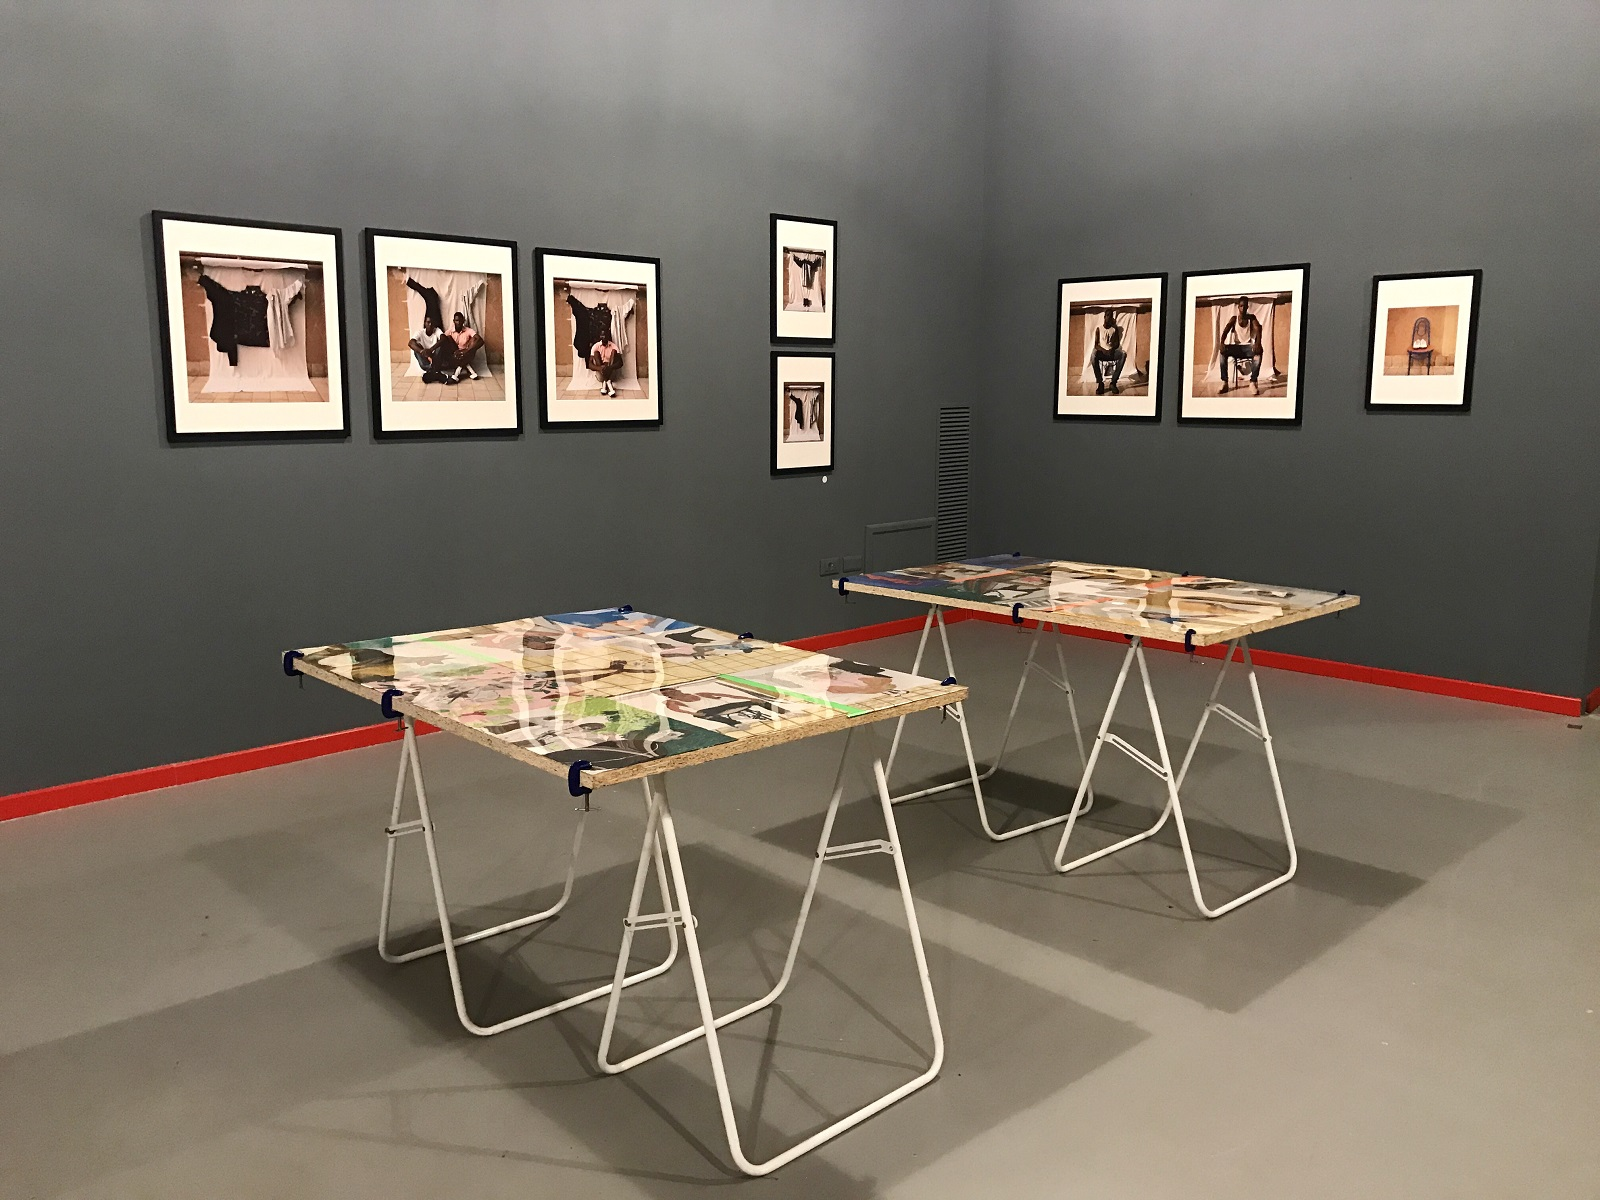 Boys don't cry, exhibition view, 2019. Centro Internazionale per la Fotografia, Palermo. Ph. HM